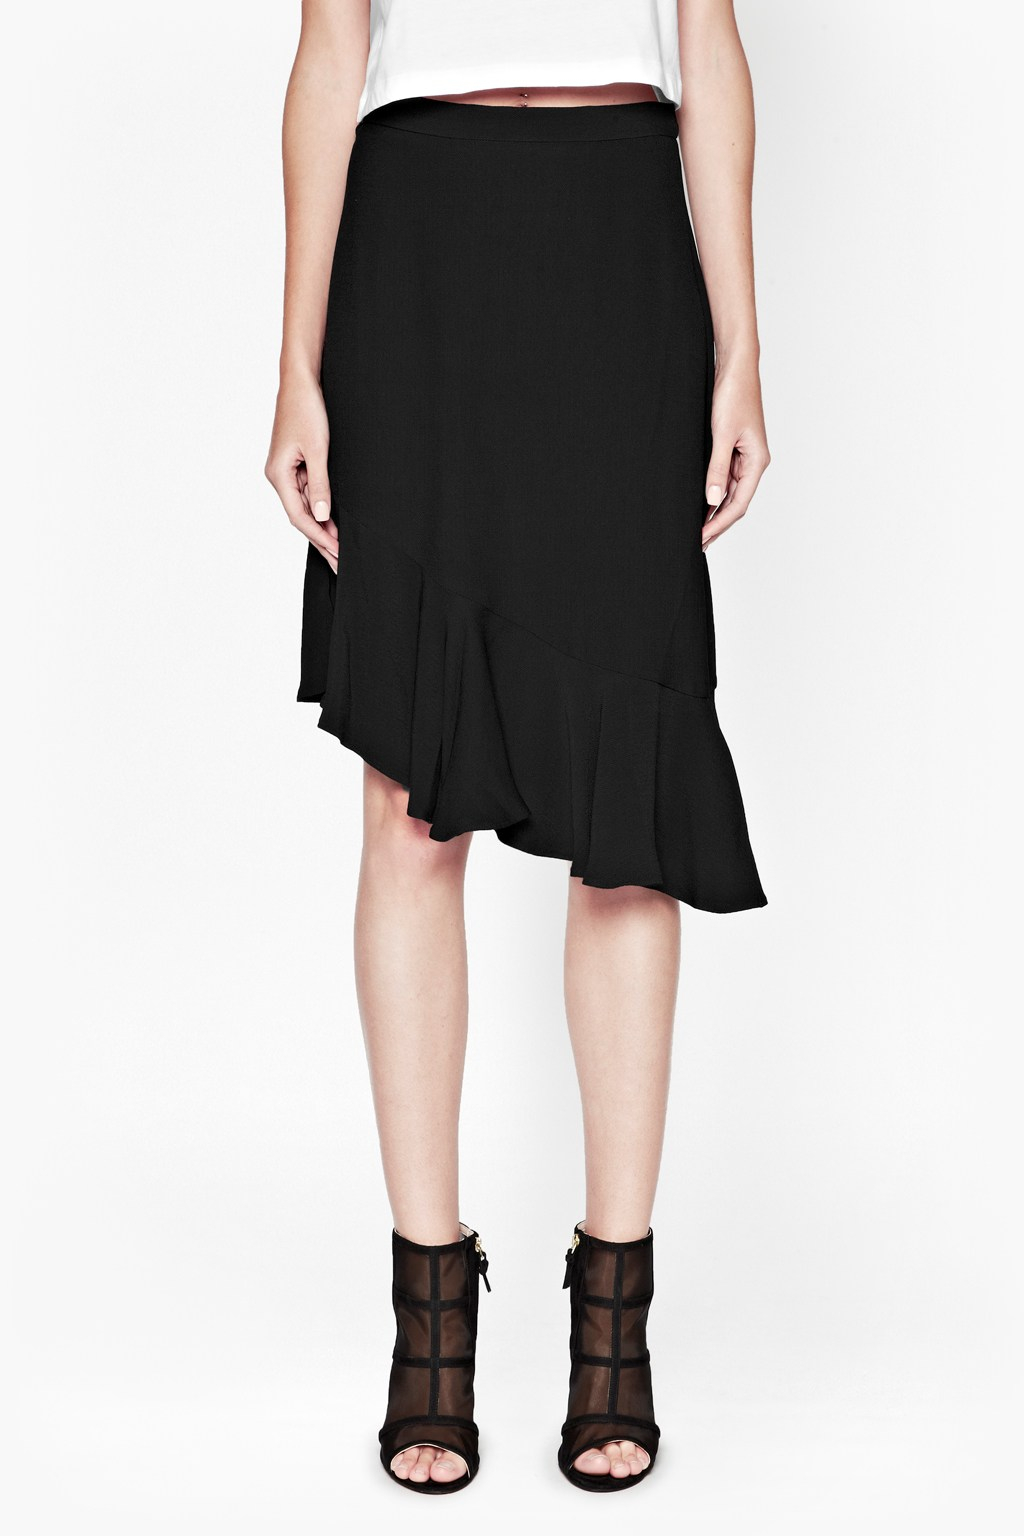 Shop crepe skirt at Neiman Marcus, where you will find free shipping on the latest in fashion from top designers.